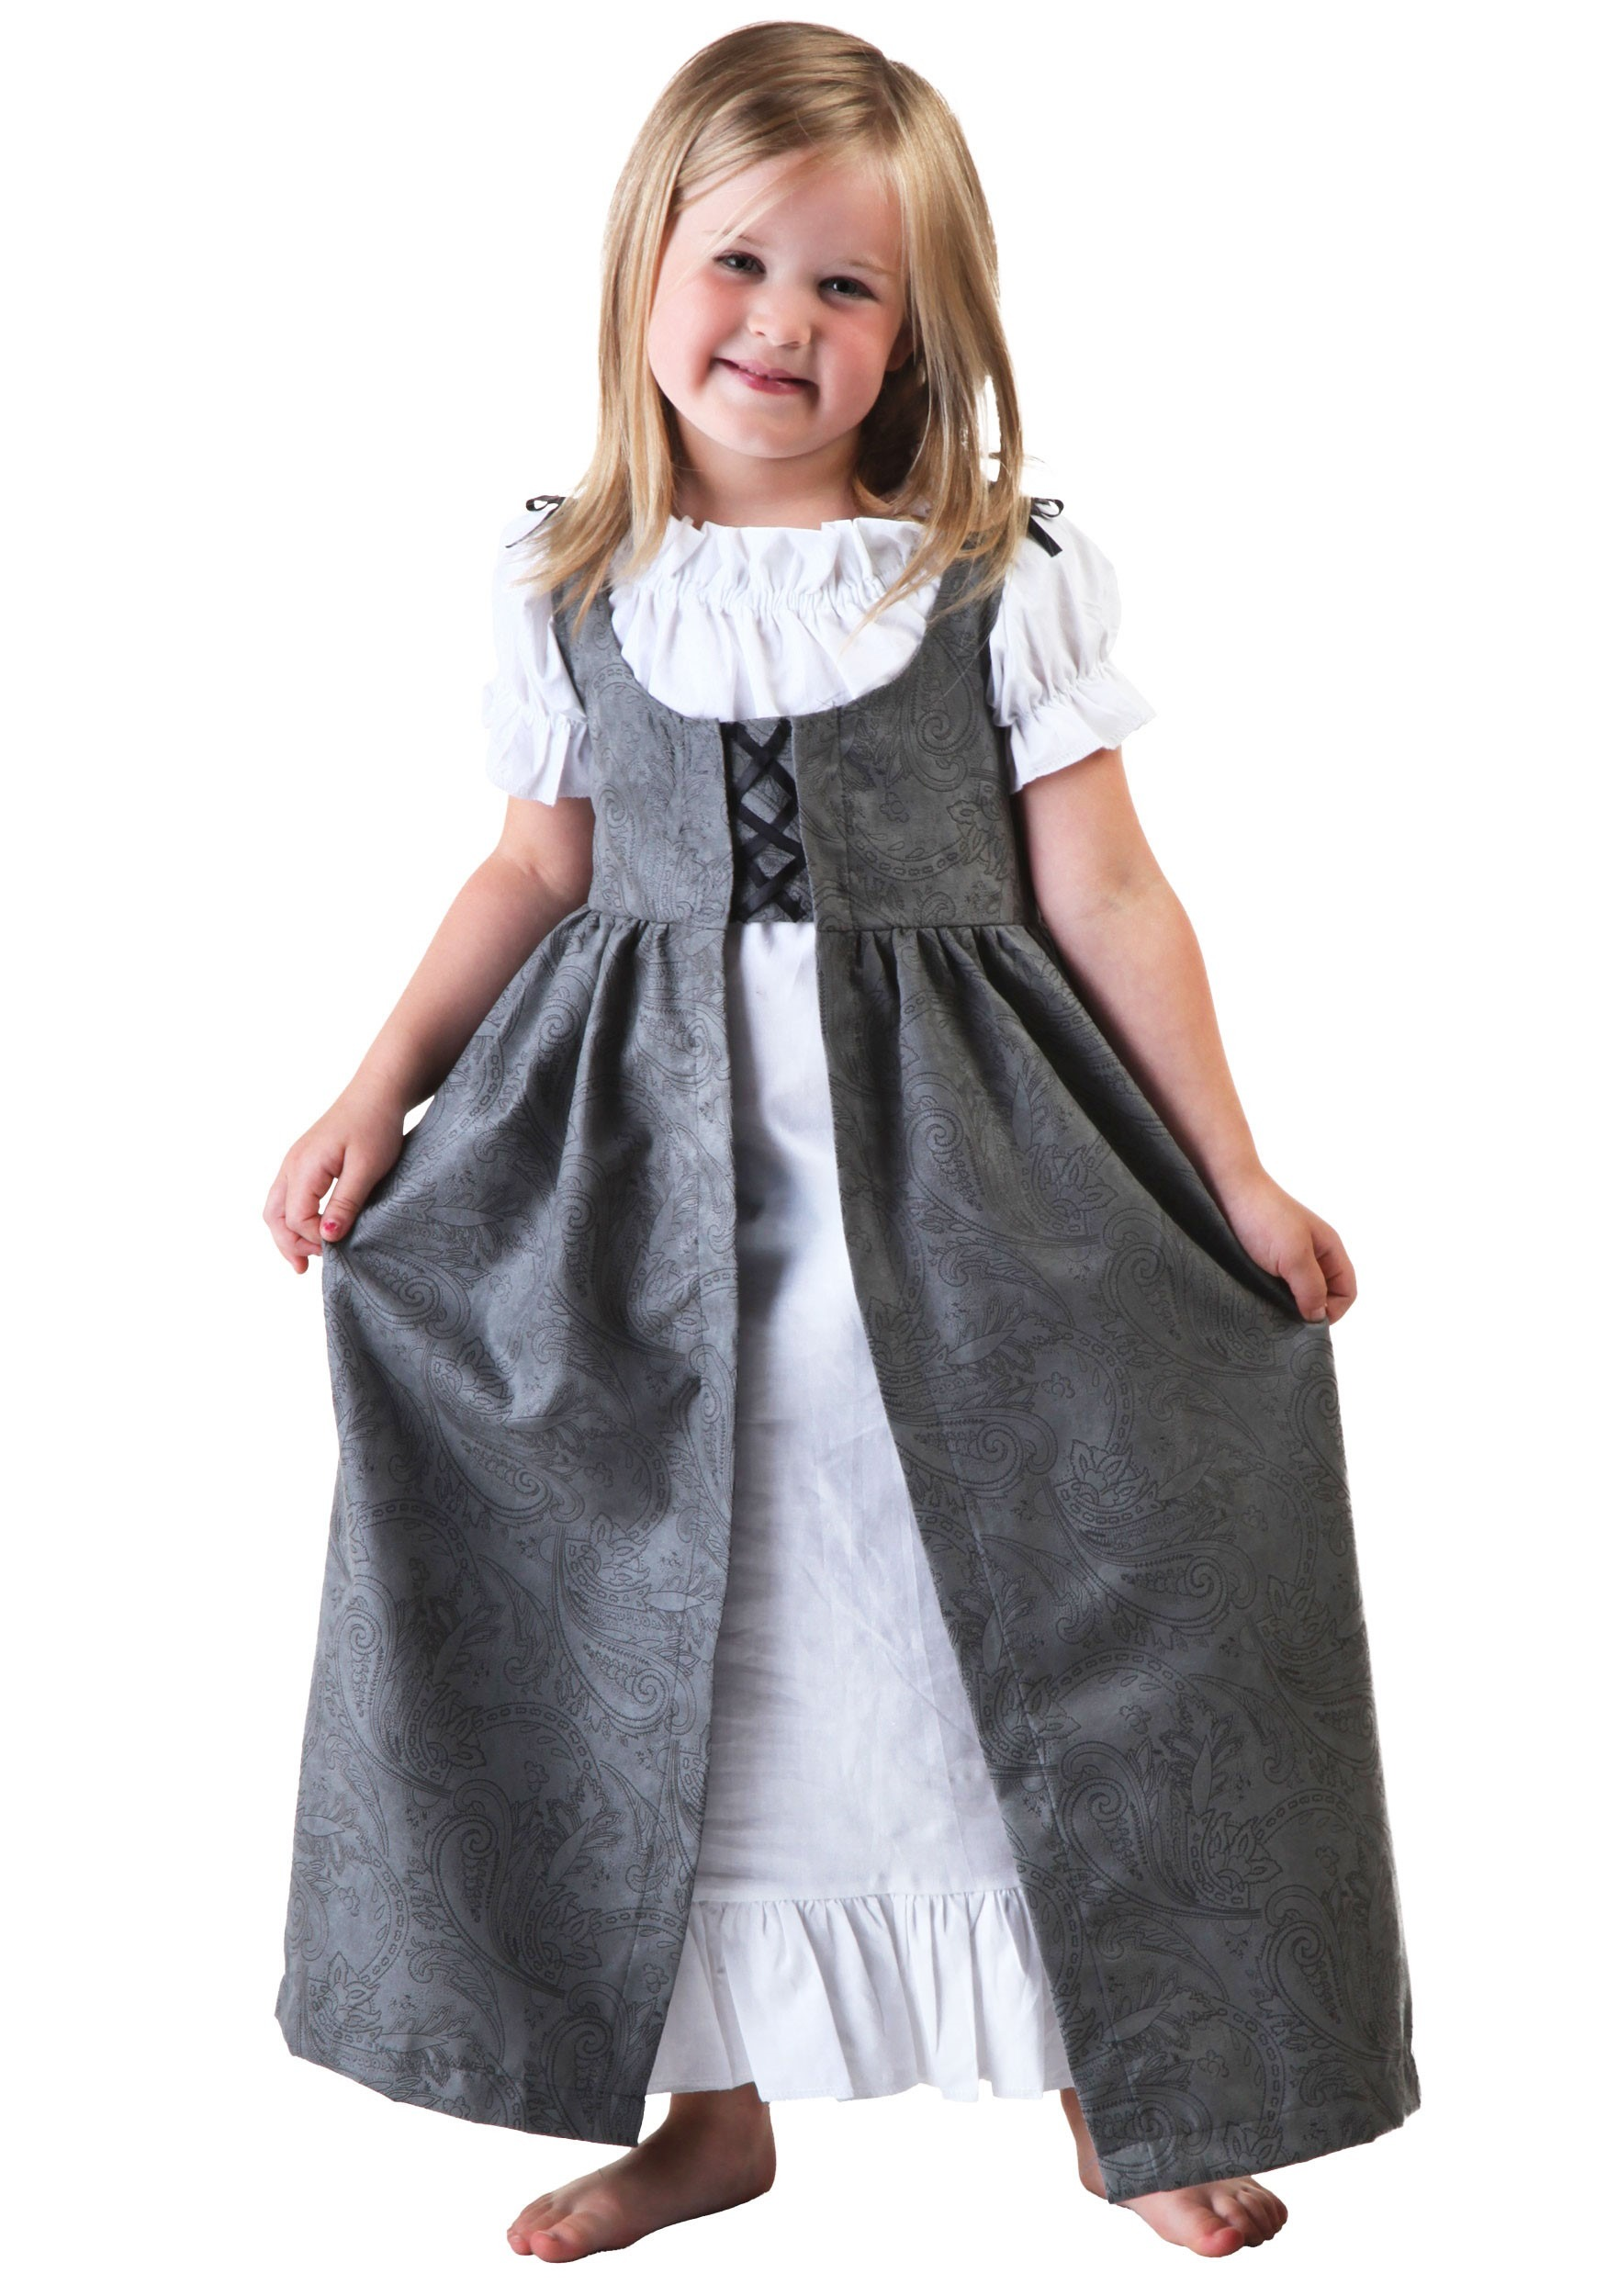 Girls Toddler Renaissance Faire Costume  sc 1 st  Halloween Costume & Girls Toddler Renaissance Faire - Child Renaissance Fair Costumes